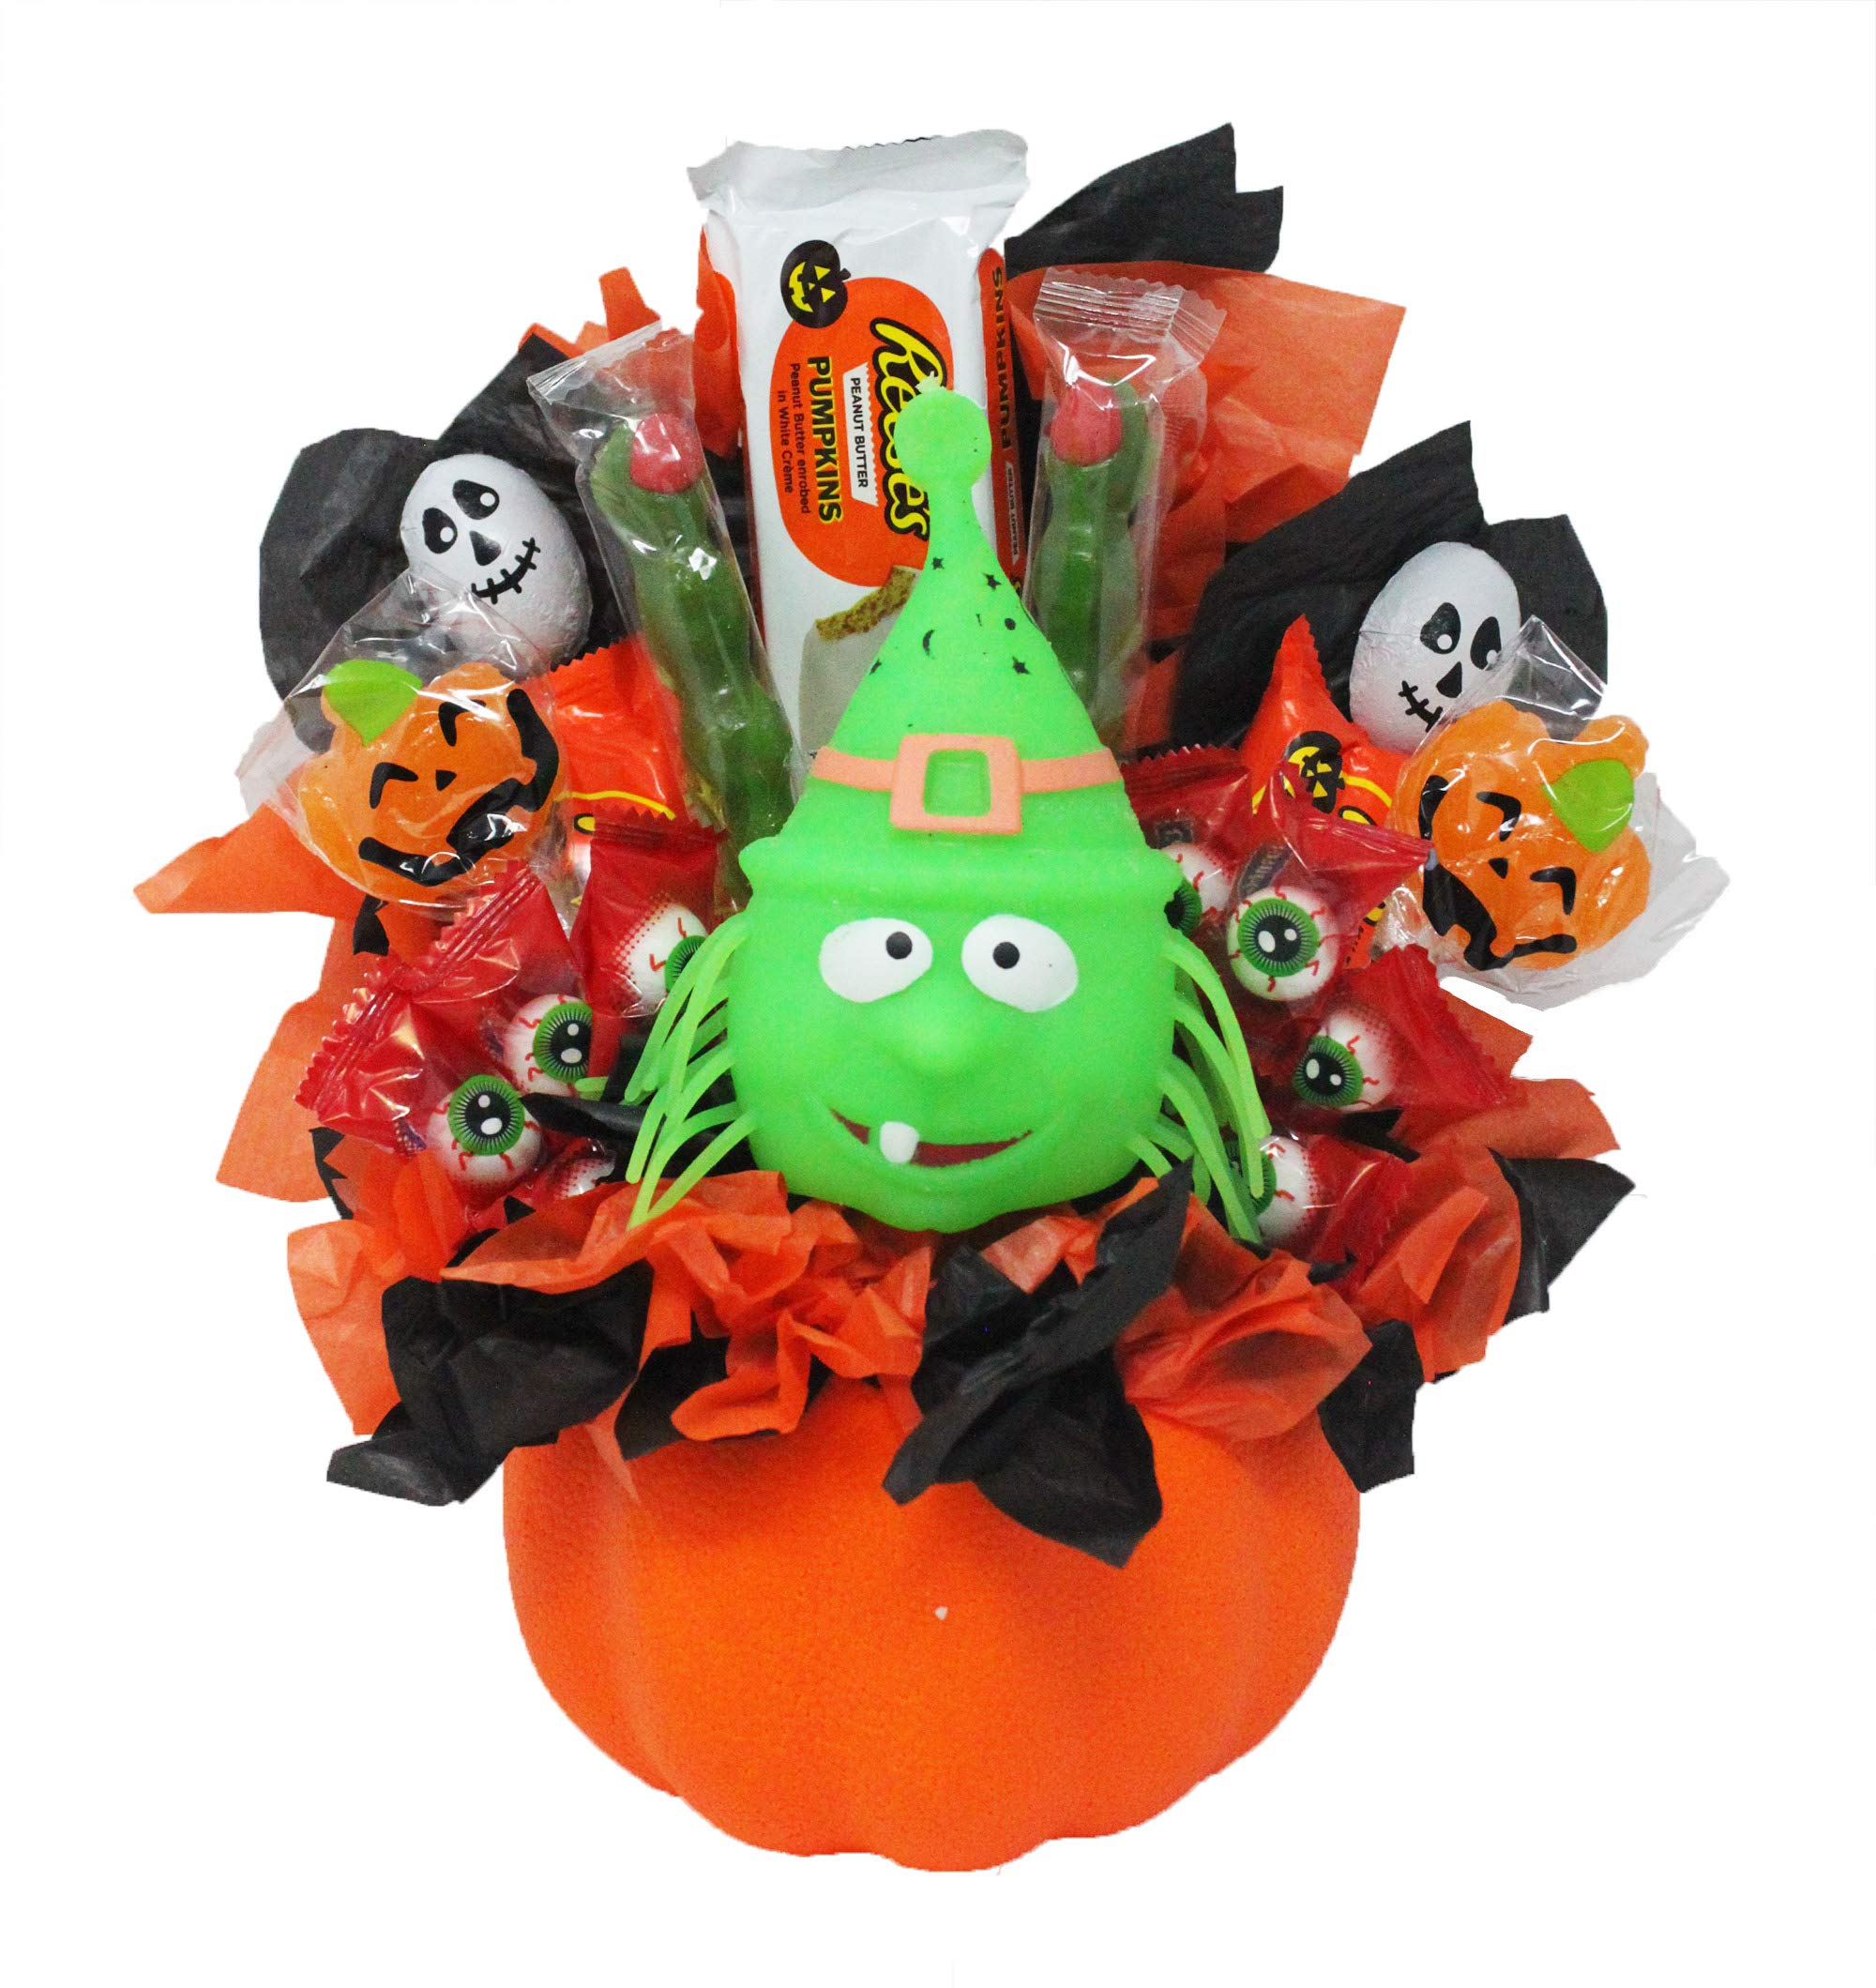 Boo-Ya! Happy Halloween Candy Bouquet Arranged in a Foam Pumpkin with Reese's King Size White Chocolate and Regular Size Milk Chocolate Pumpkin Bars, Zombie Fingers, Skulls, Jack-O-Lanterns and Witch by Online 24/7 LLC